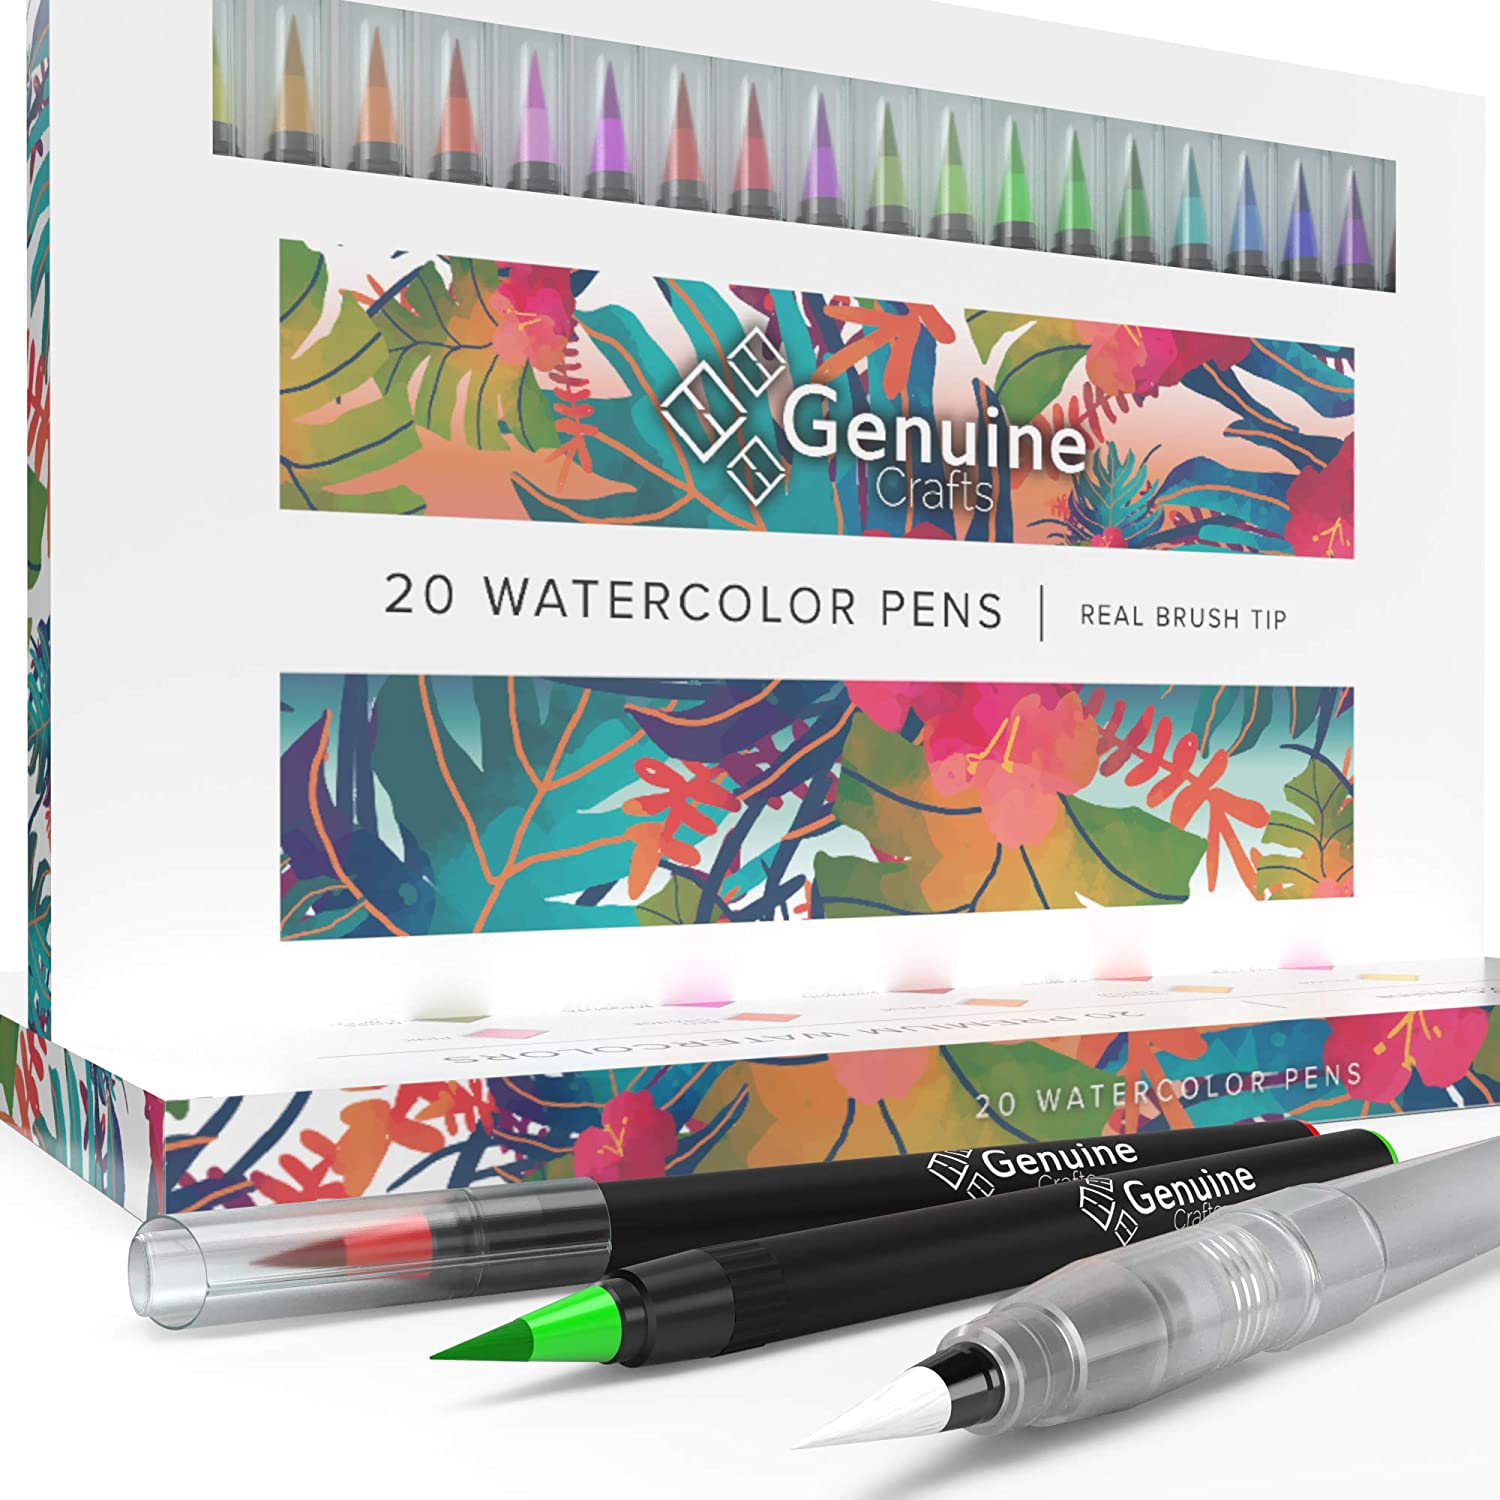 Watercolor Brush Pens by Genuine Crafts - Set of 20 Premium Colors - Real Brush Tips - 1 Refillable Water Pen - No Mess Storage Case - Washable Nontoxic Markers - Portable Painting